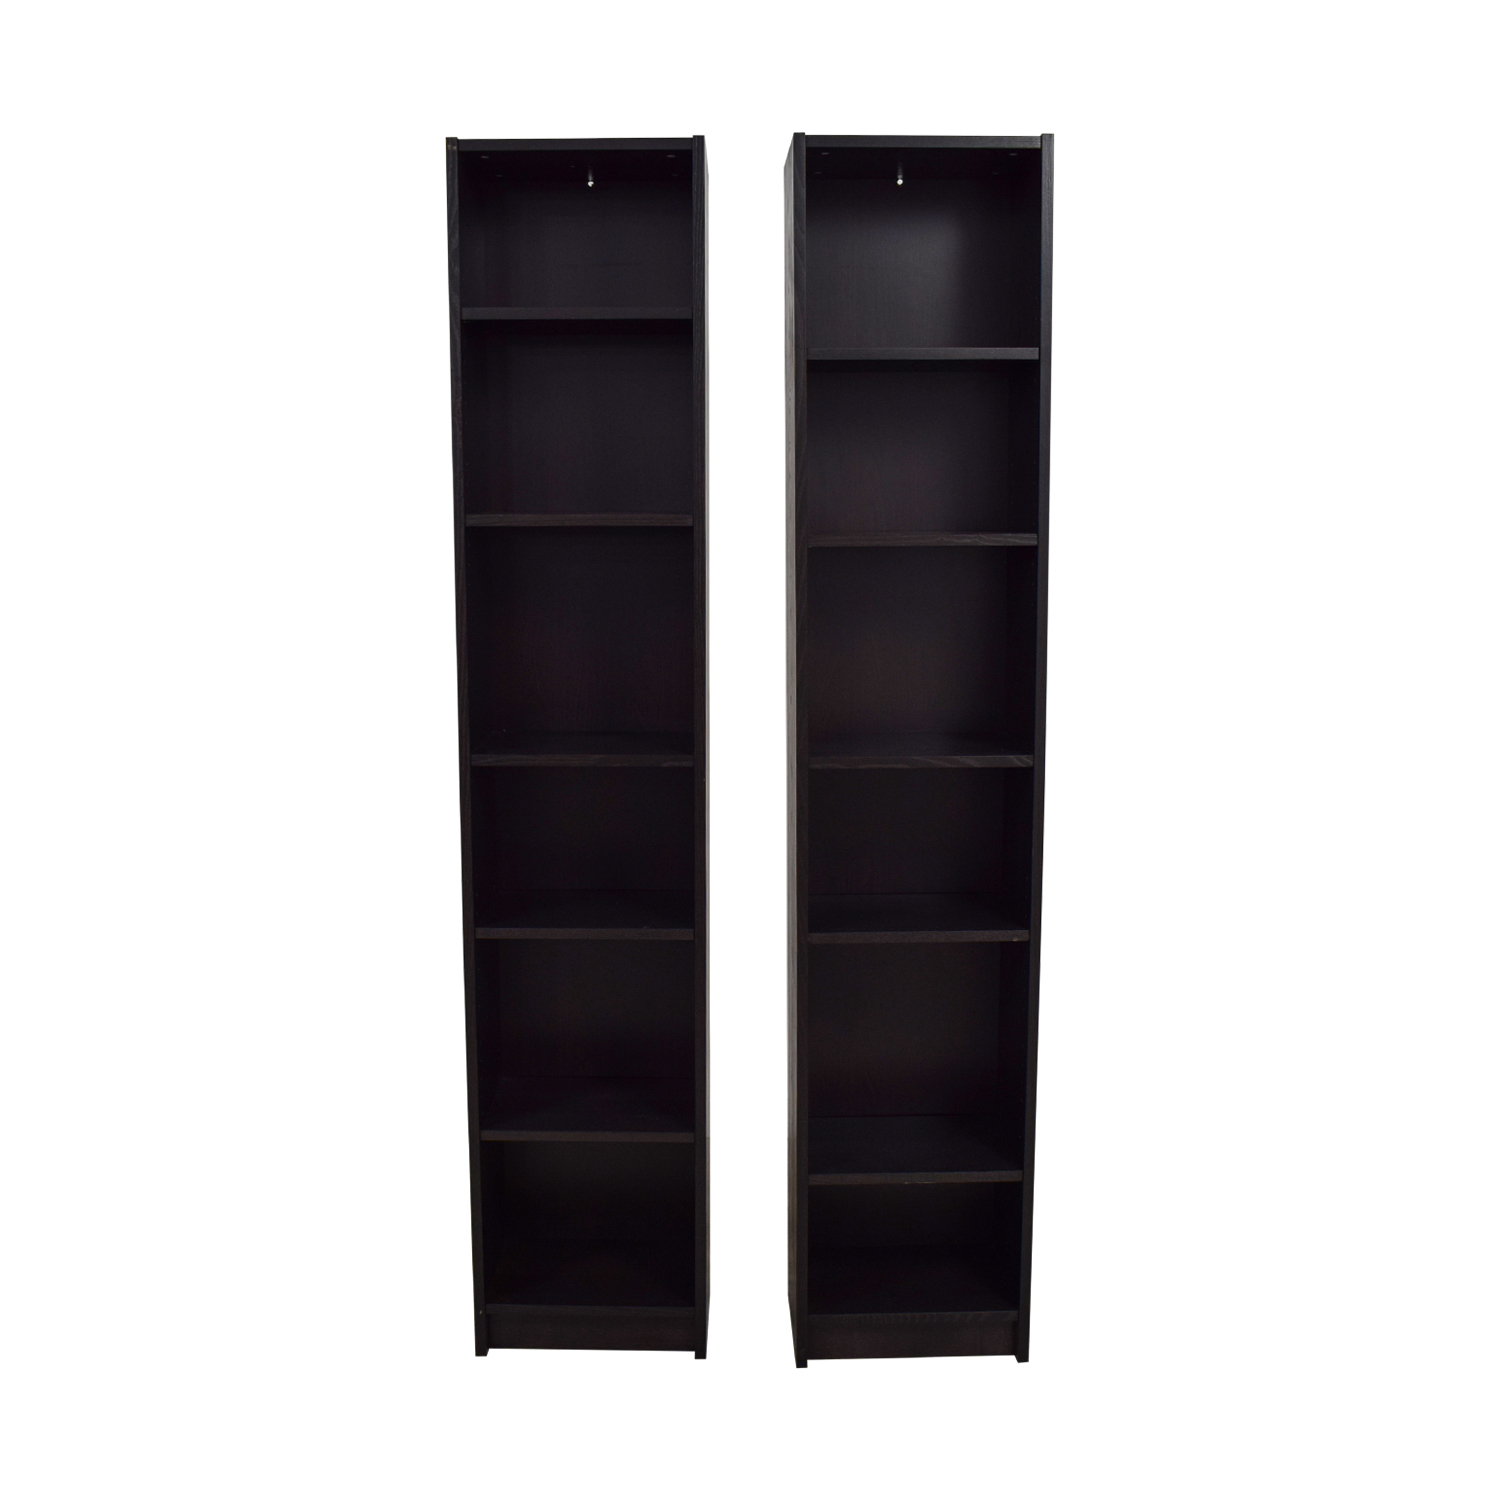 shop ikea ikea billy tall narrow bookcase online - Tall Narrow Bookshelves